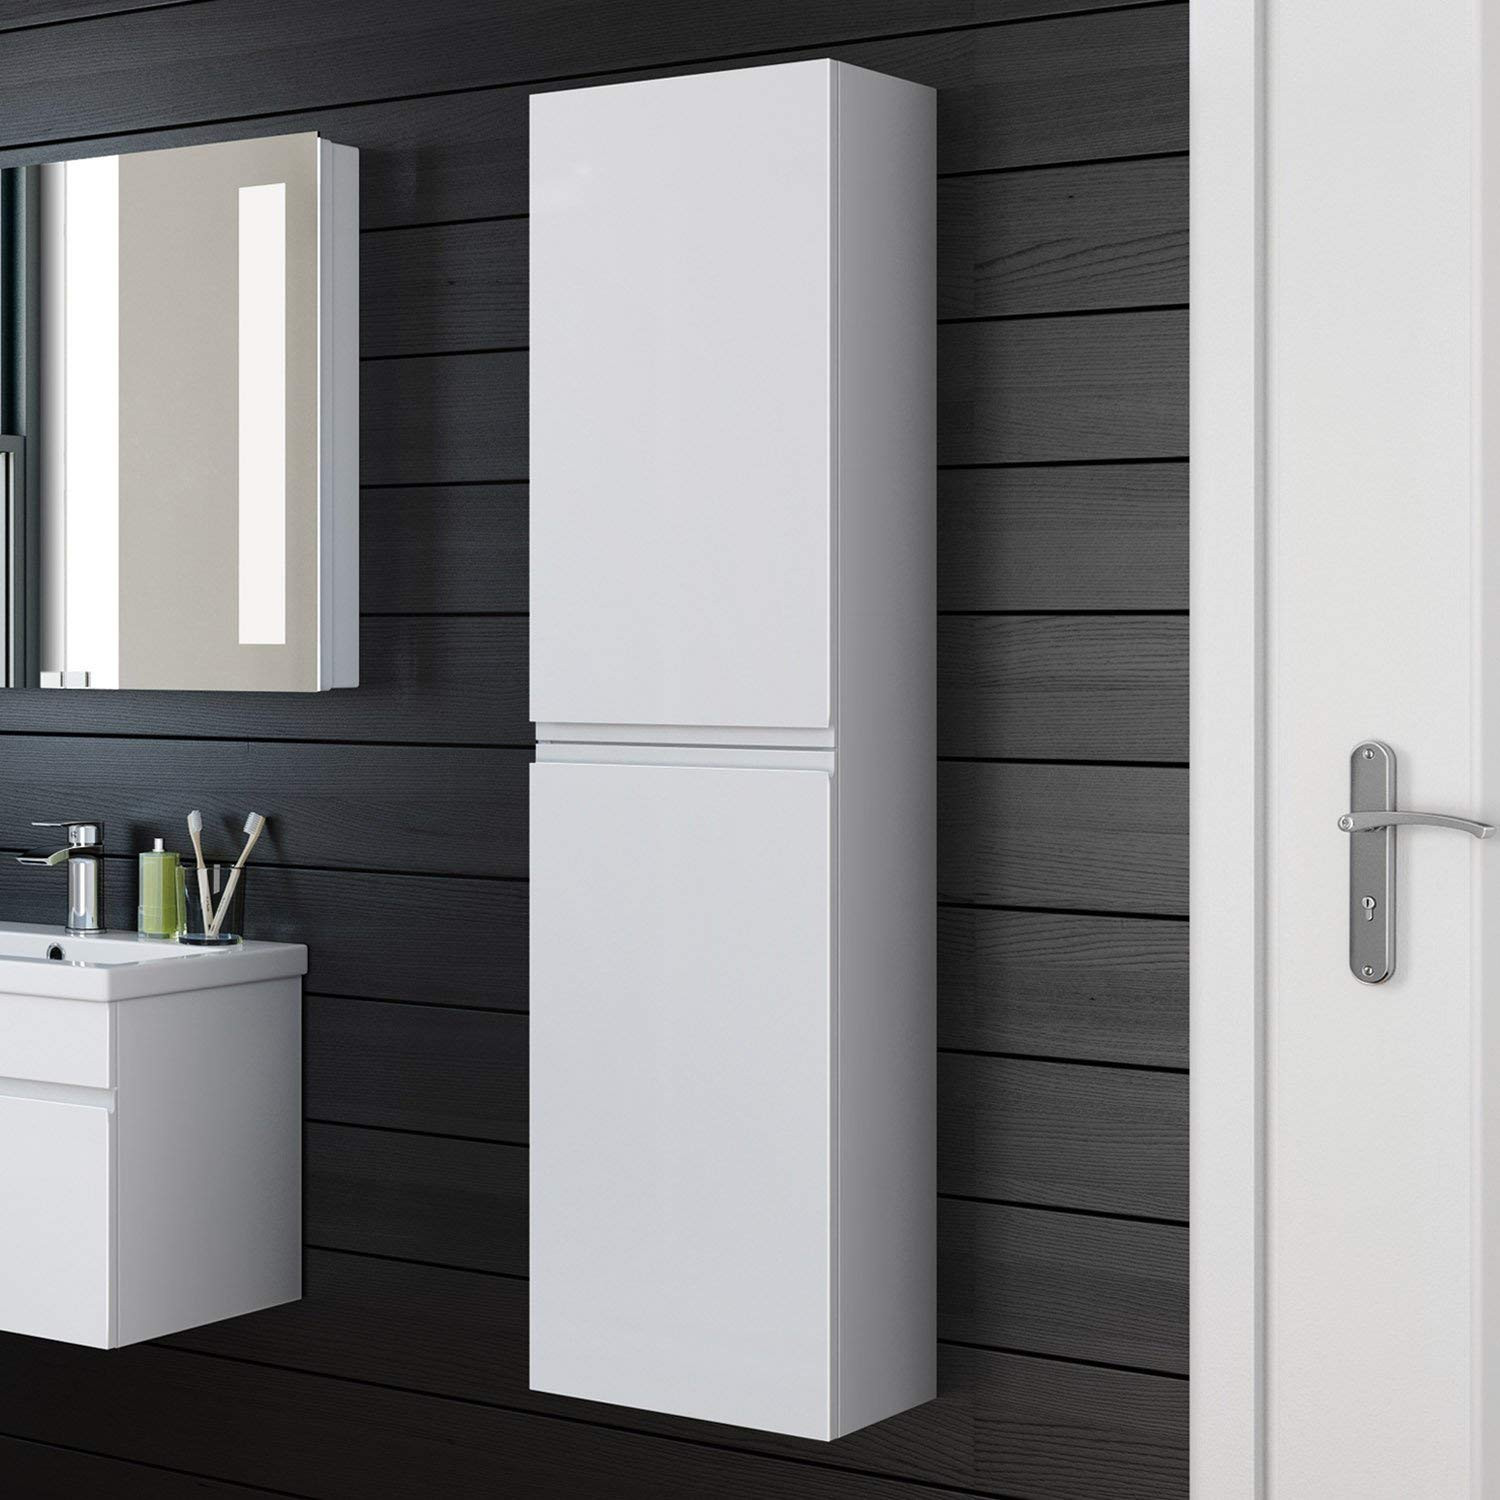 Best ideas about Wall Mounted Bathroom Cabinets . Save or Pin Wall Mounted Bathroom Cabinets White Gloss – Cabinets Matttroy Now.